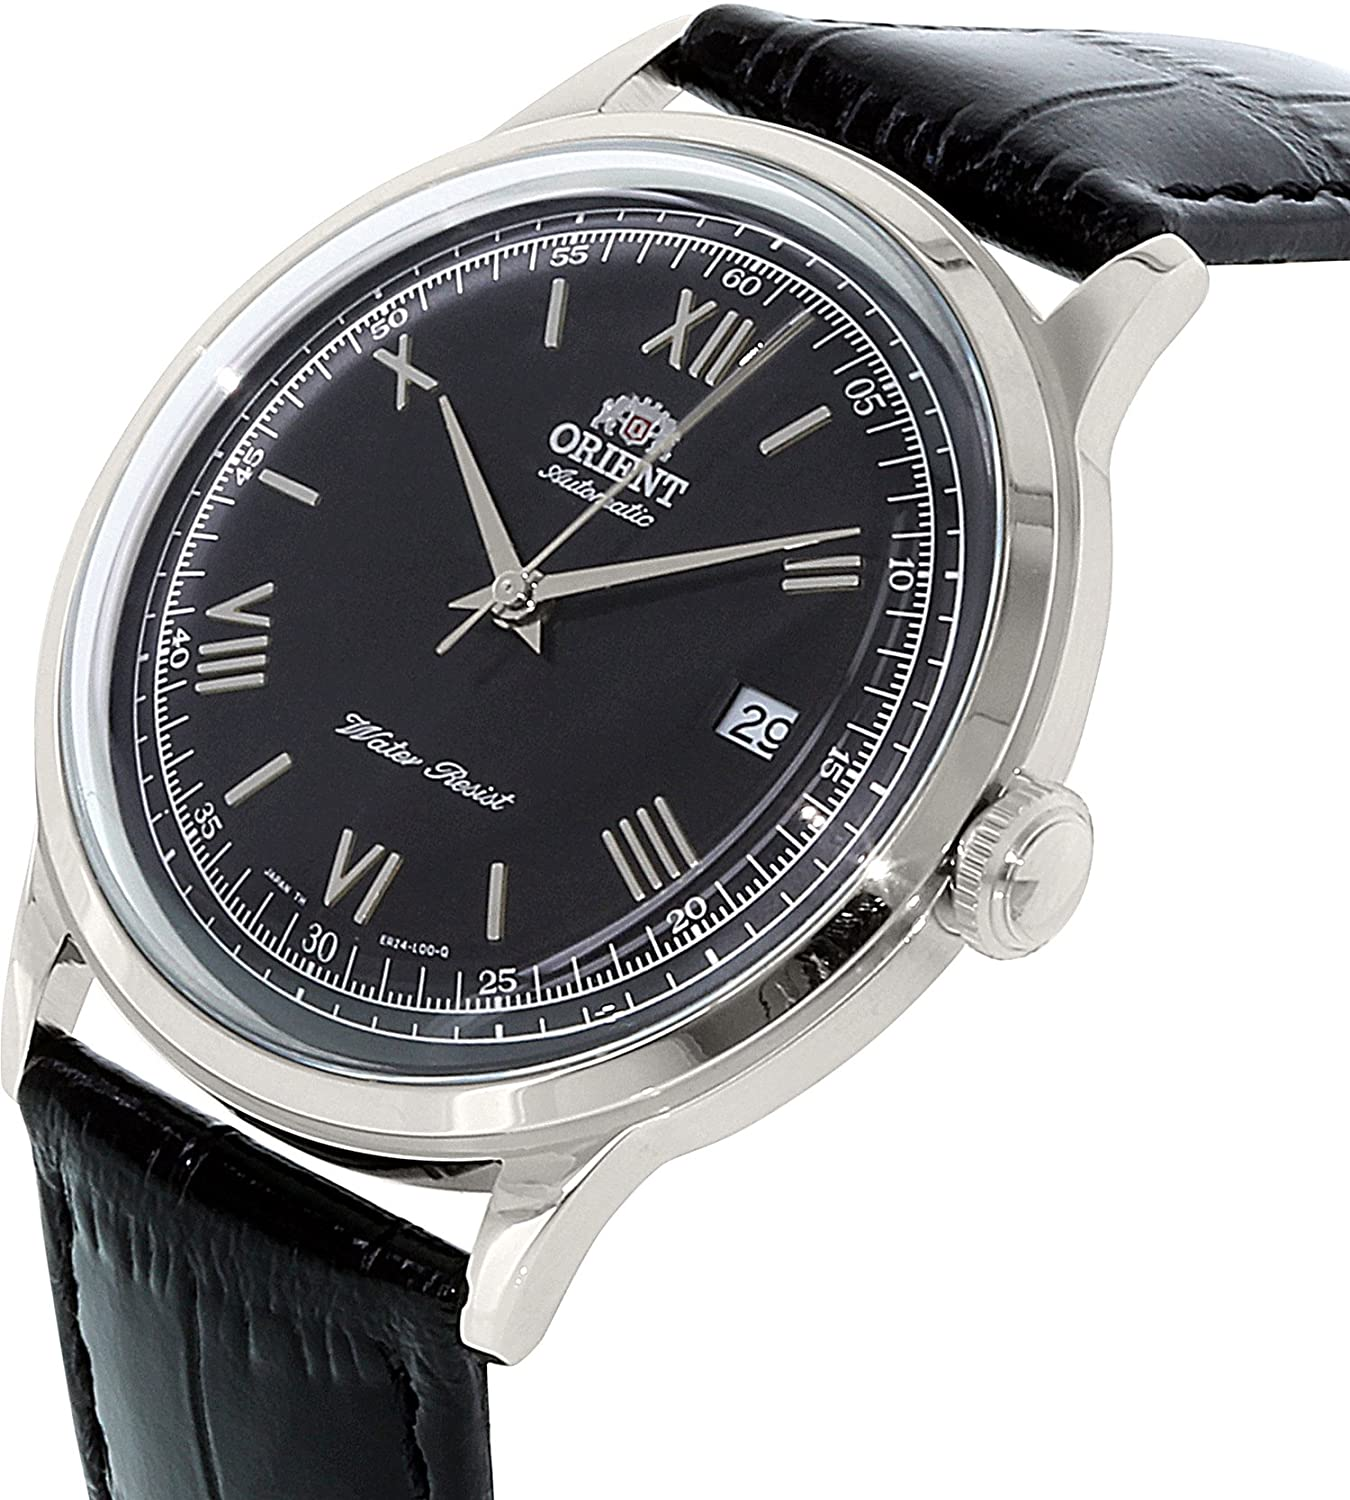 Orient Bambino Automatic Dress Watch with Black Dial, Roman Numeral Markers ER2400DB